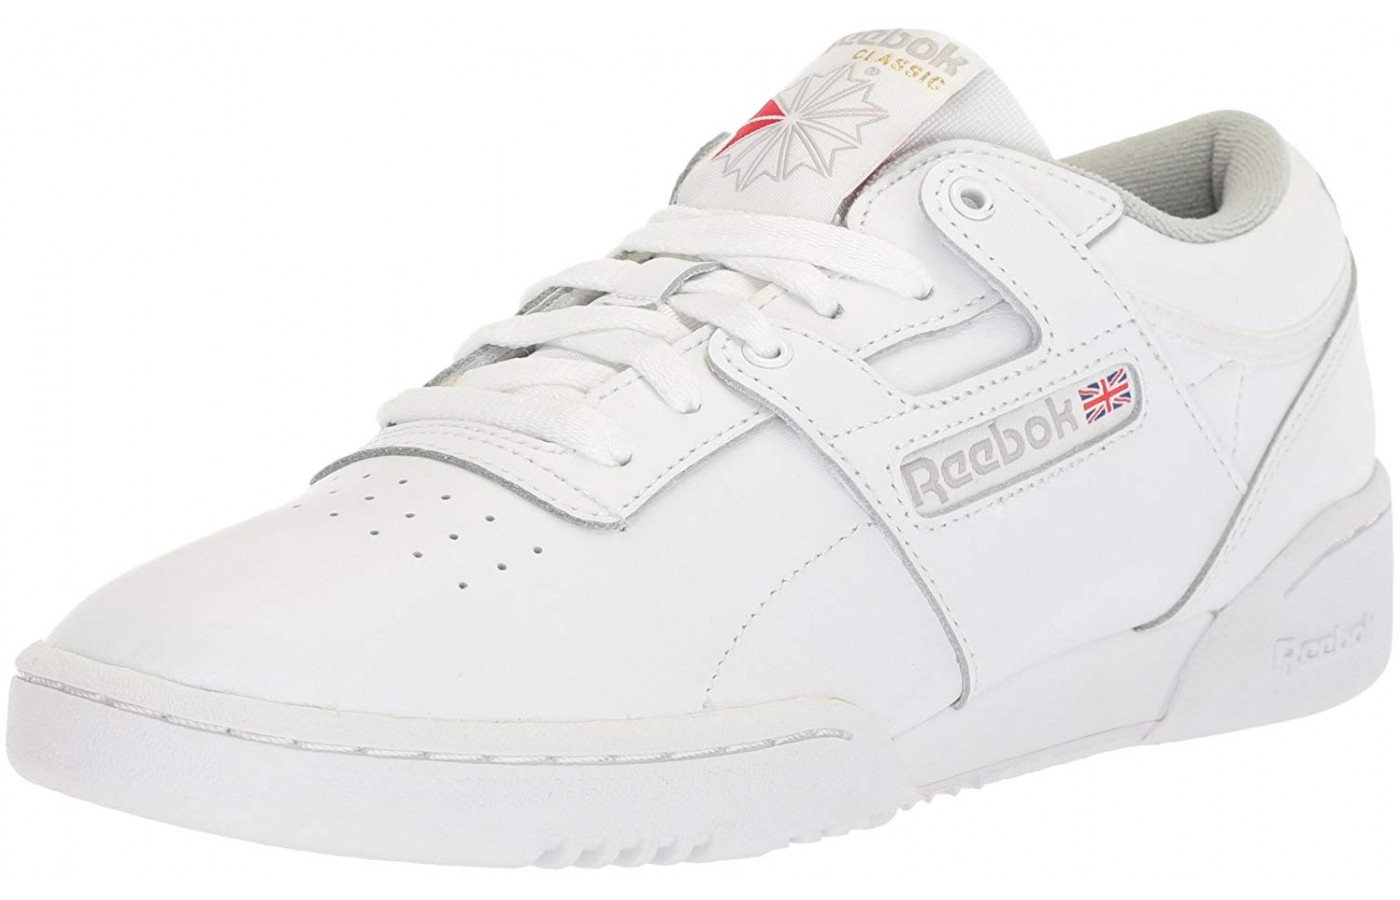 Reebok Workout Angled